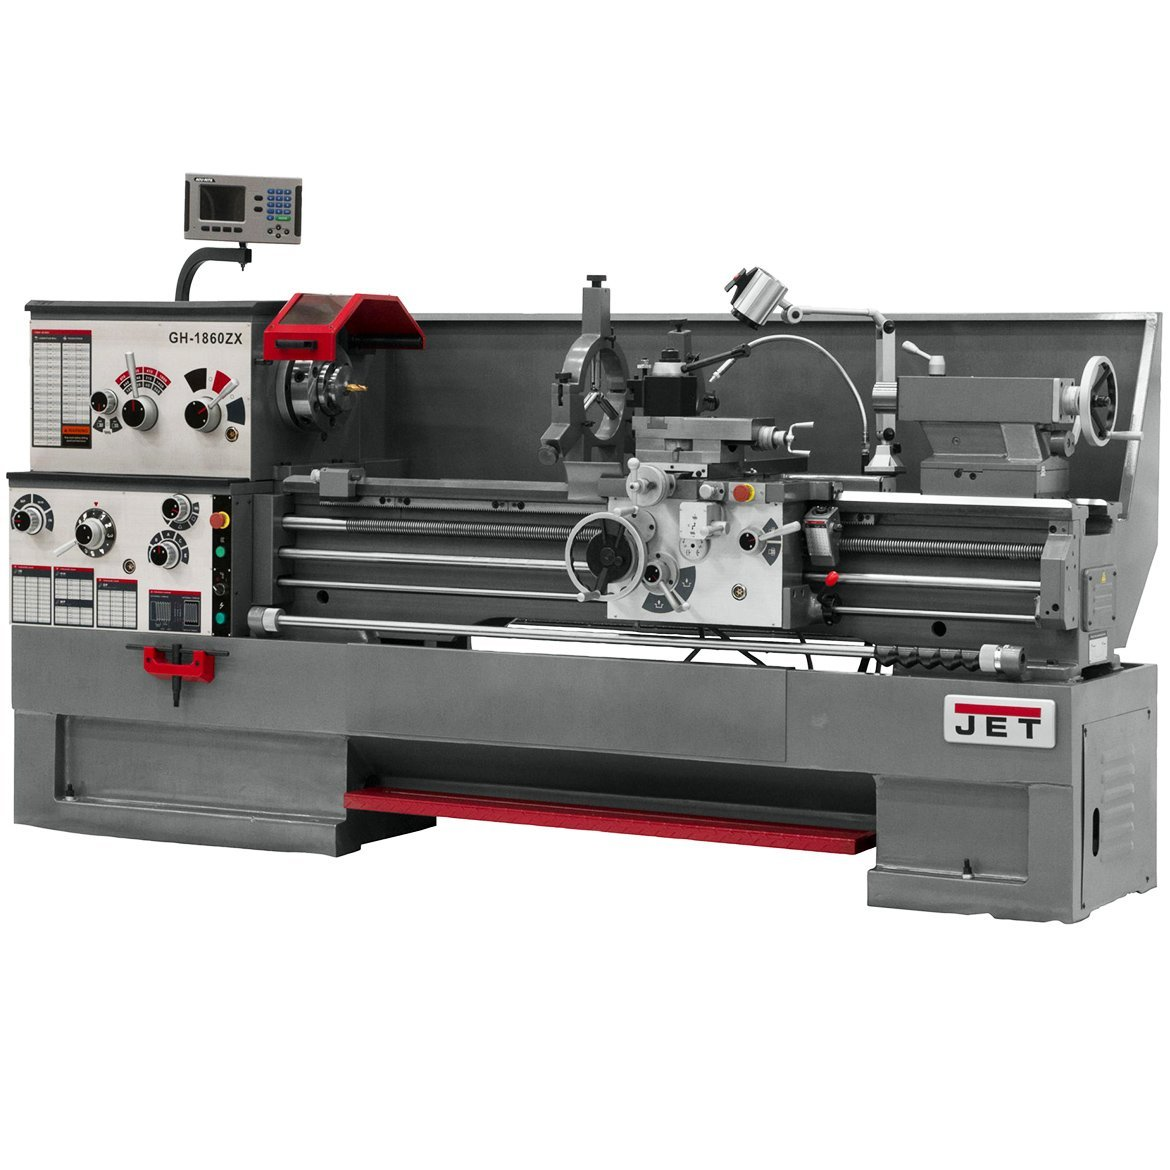 JET GH-1880ZX Lathe with ACU-RITE 300S DRO